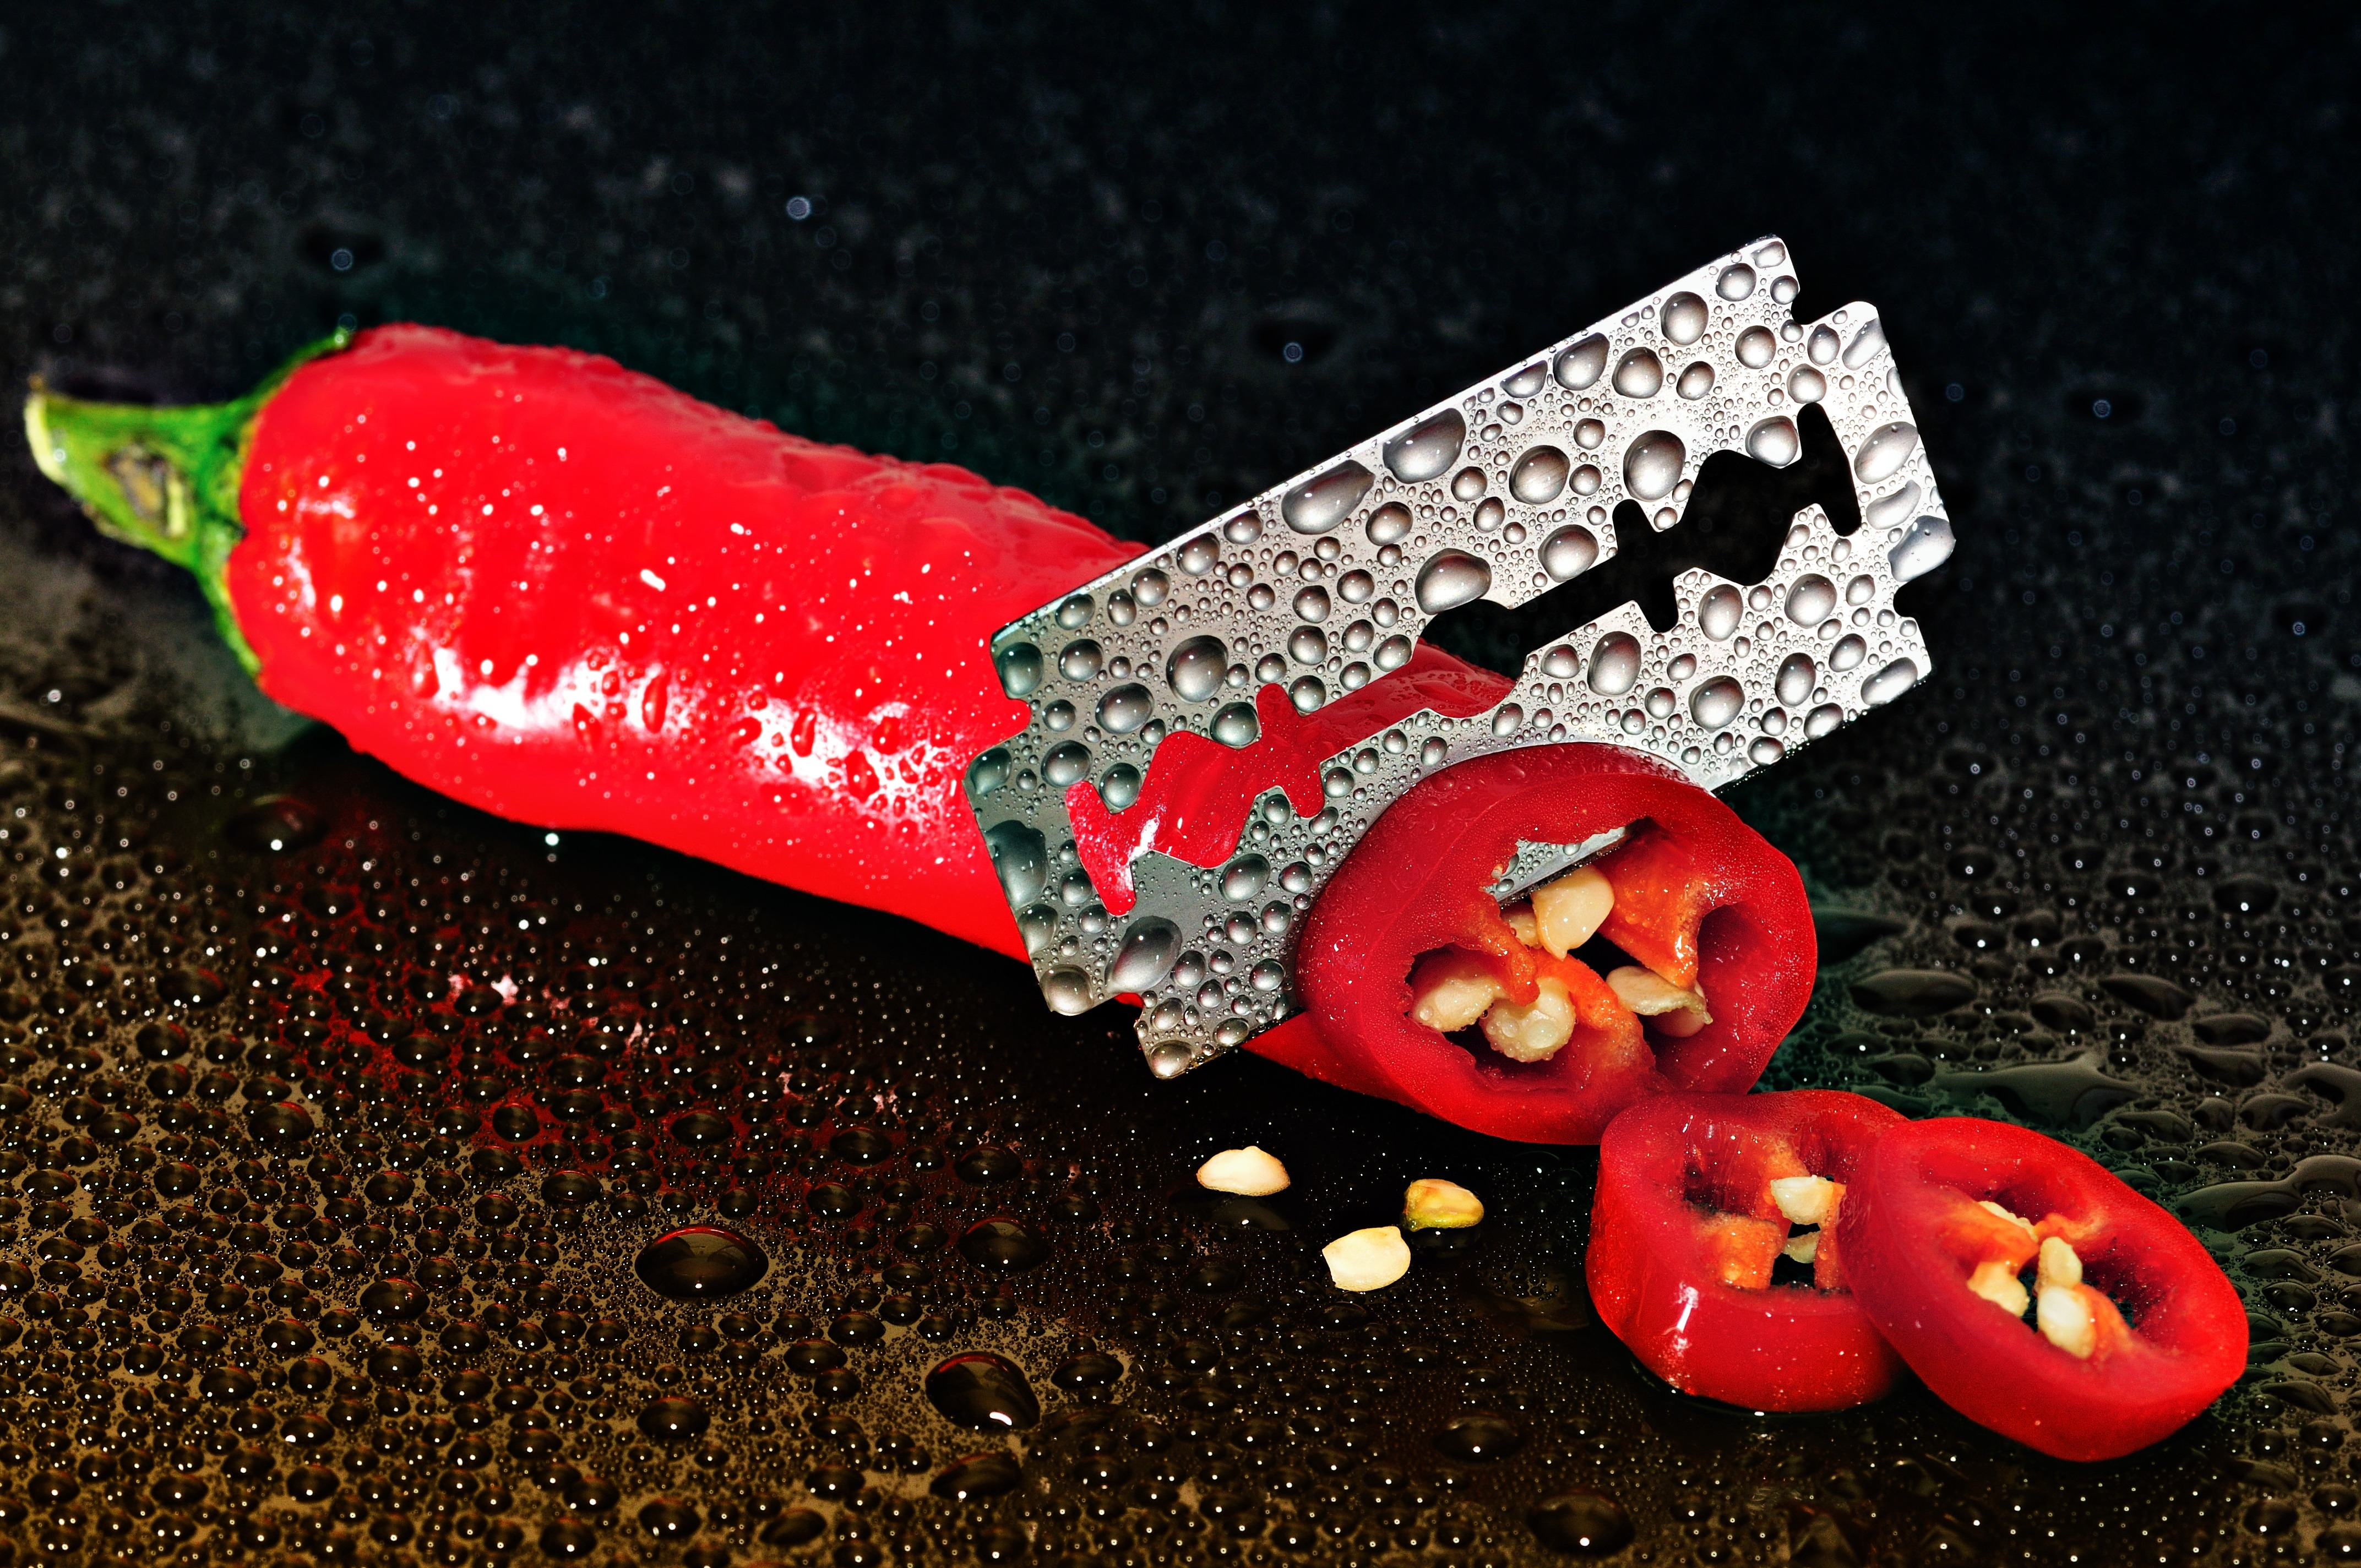 127040 download wallpaper Food, Chile, Blades, Blade, Drops, Pepper screensavers and pictures for free